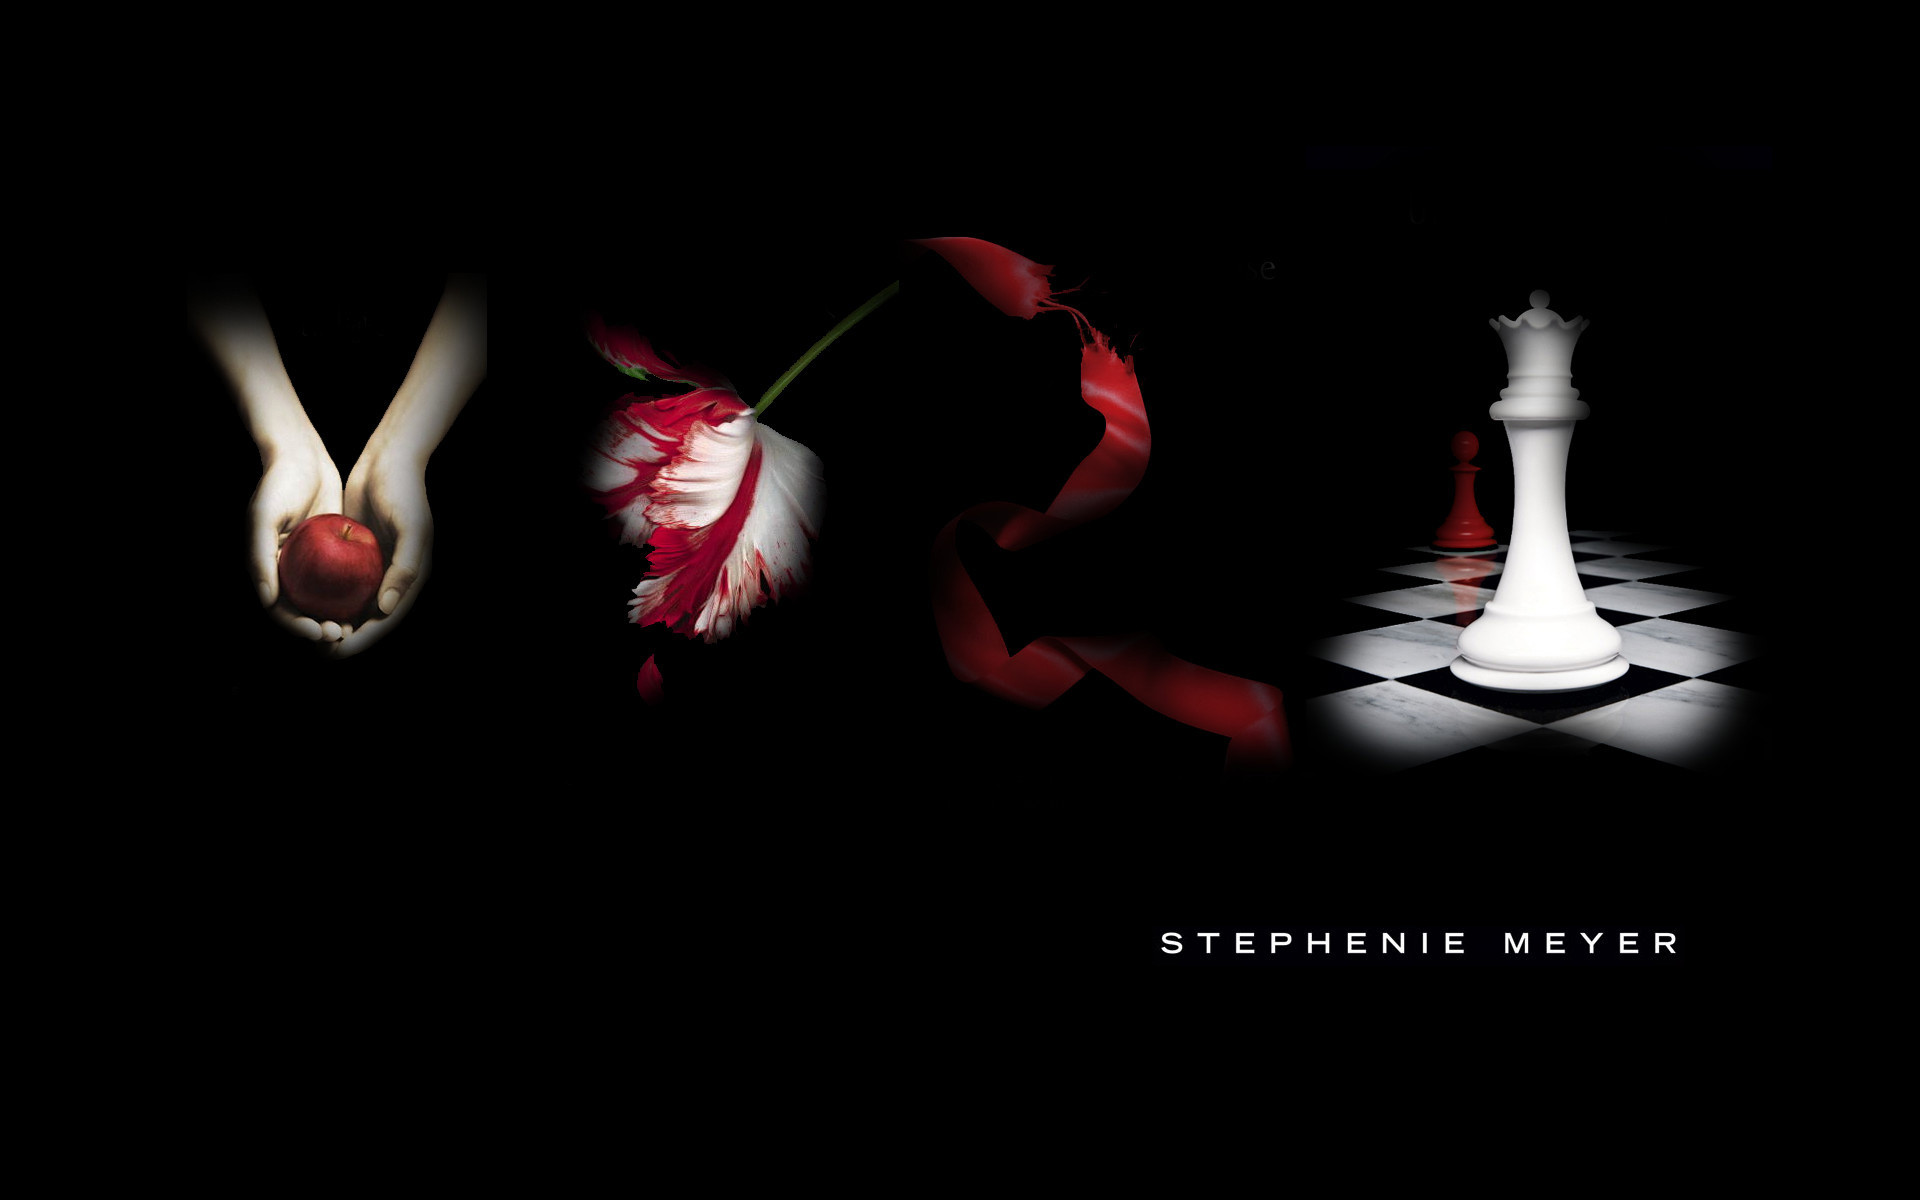 twilight saga wallpapers 66 pictures